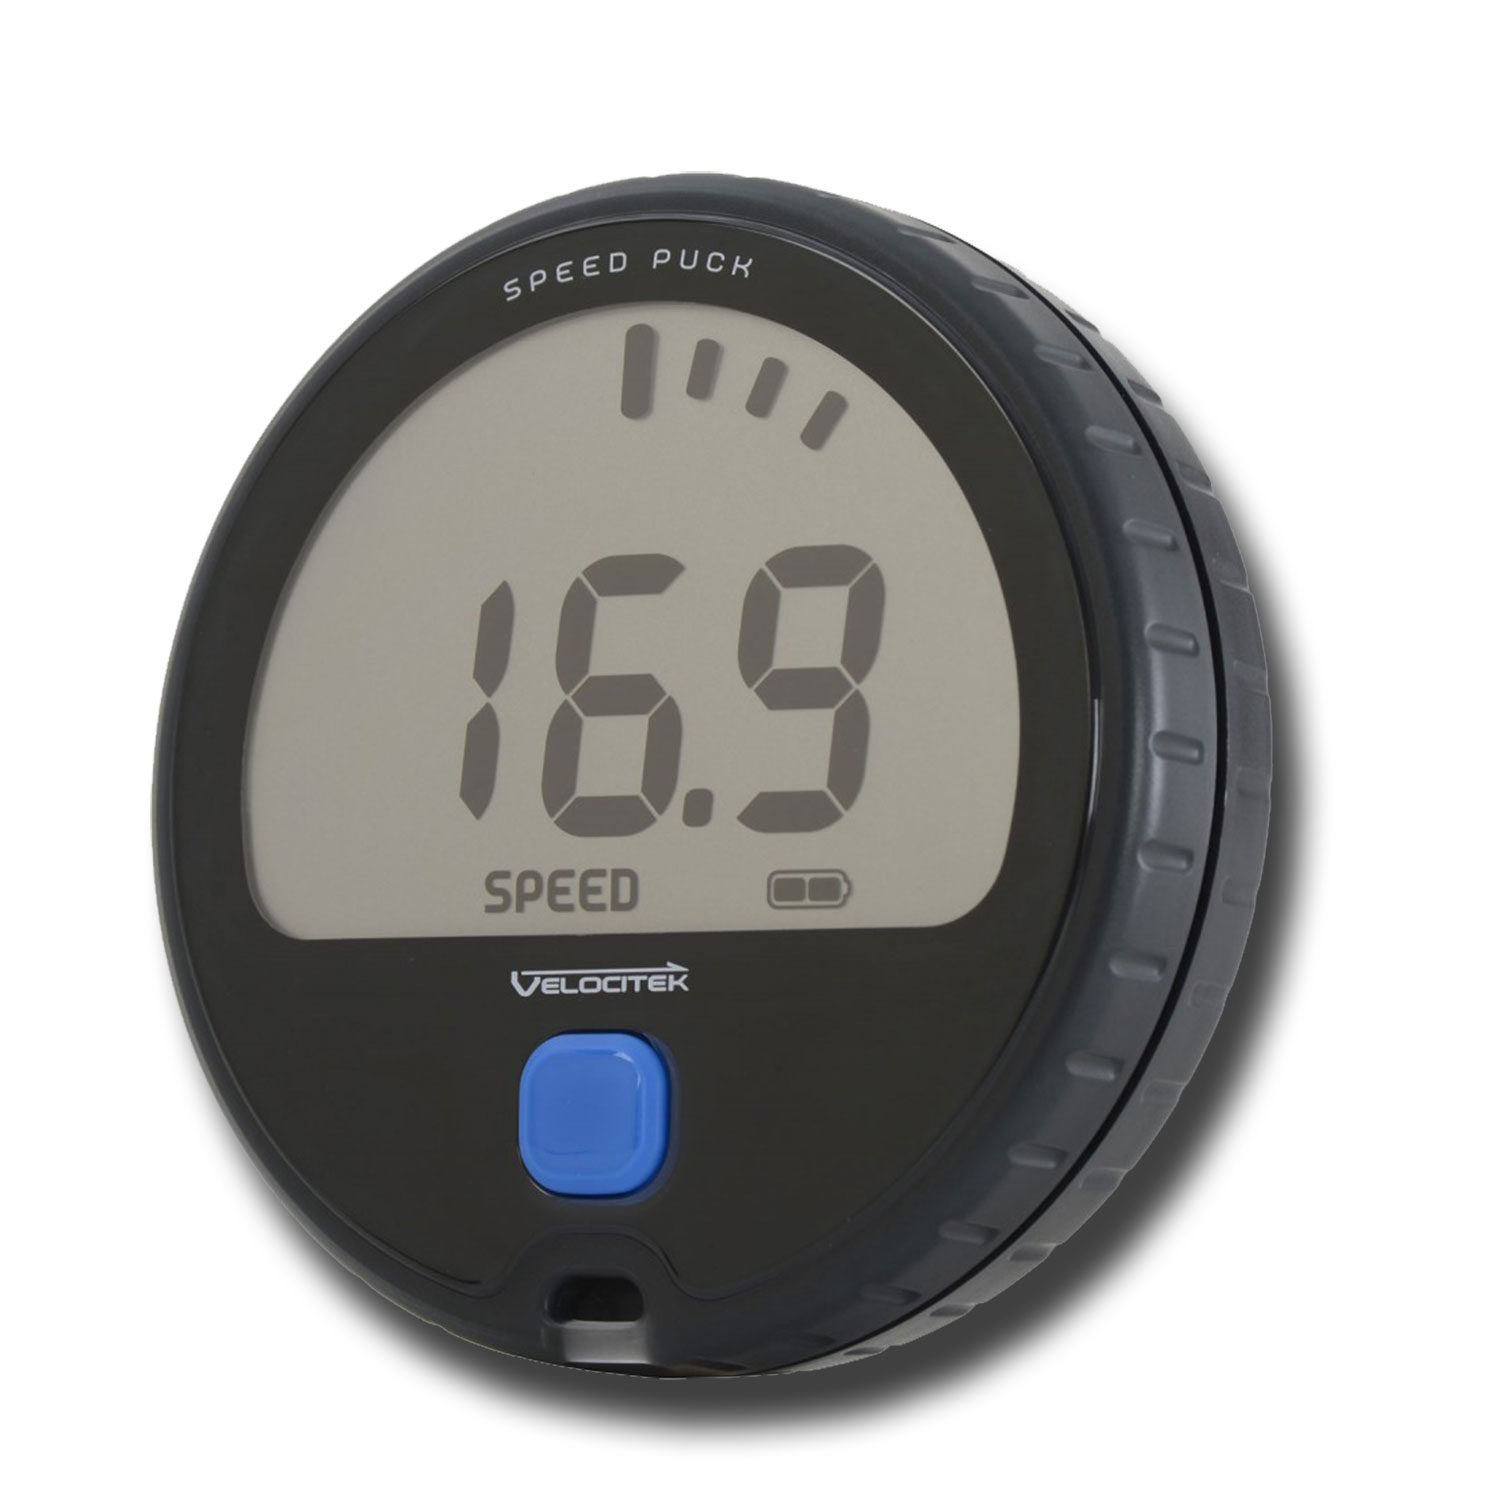 Velocitek Speedpuck Gps Speedo Windshift Indicator